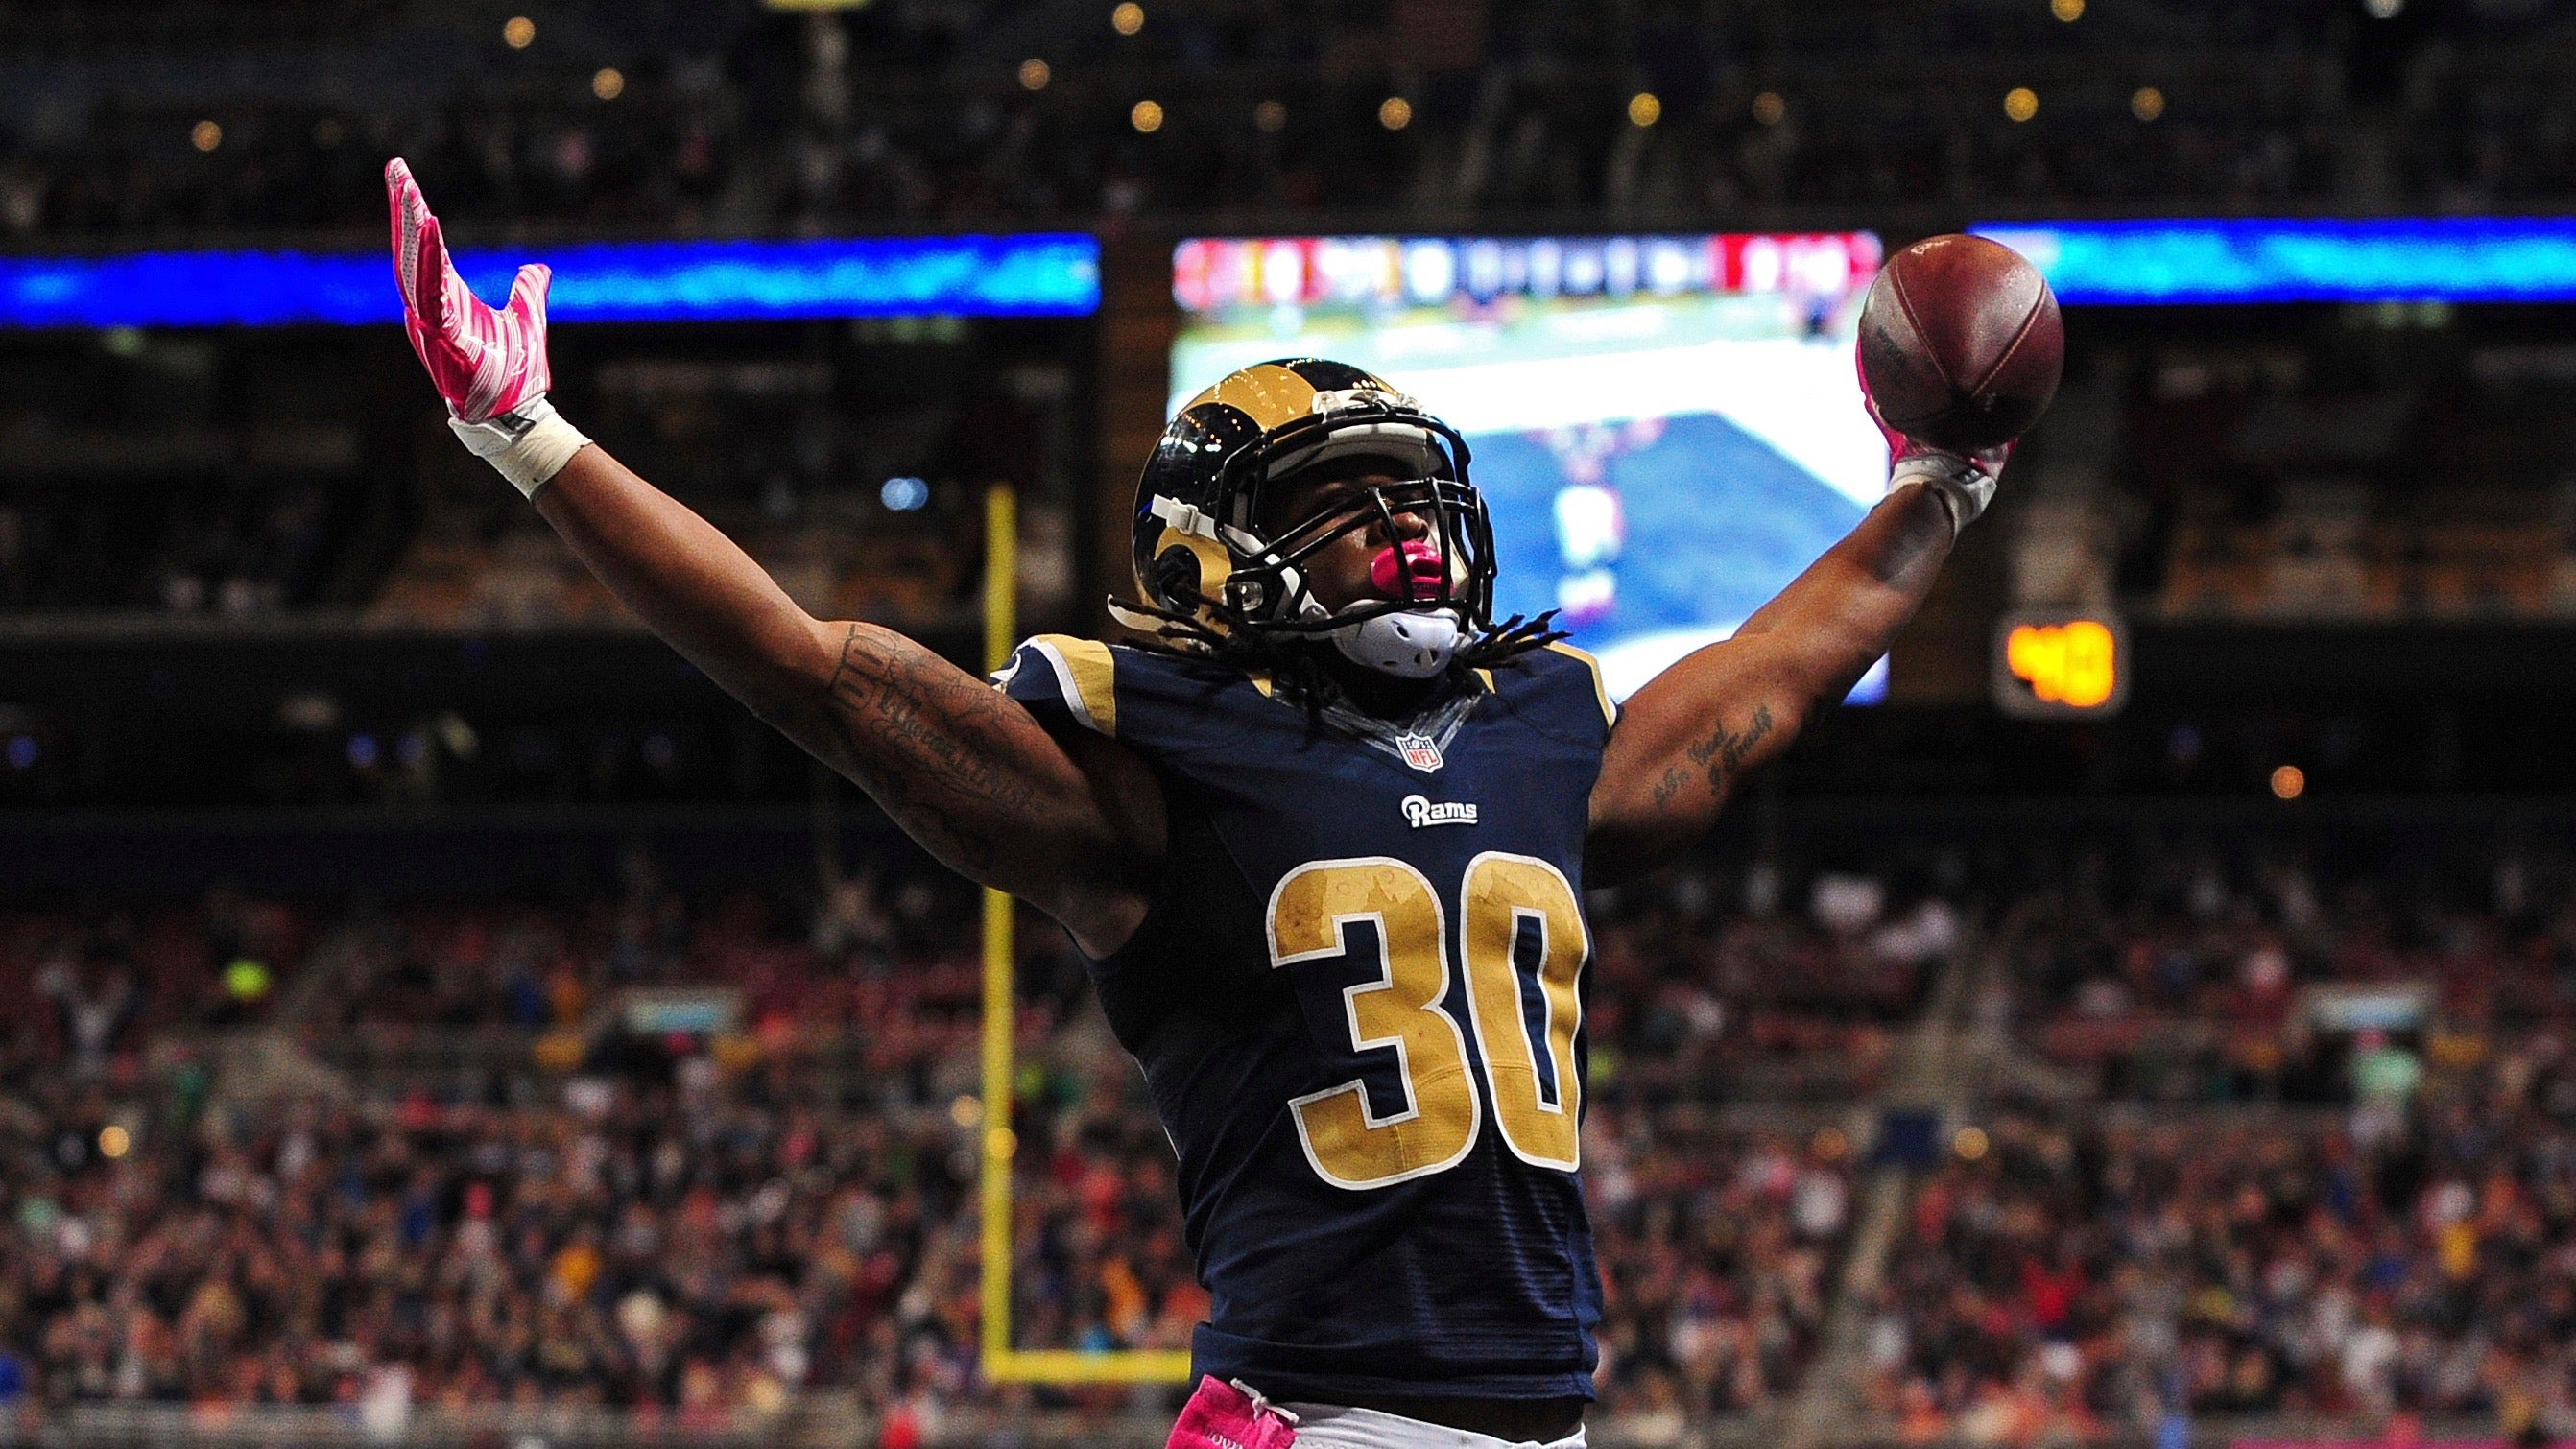 Todd Gurley St Louis Rams beat visiting Cleveland Browns